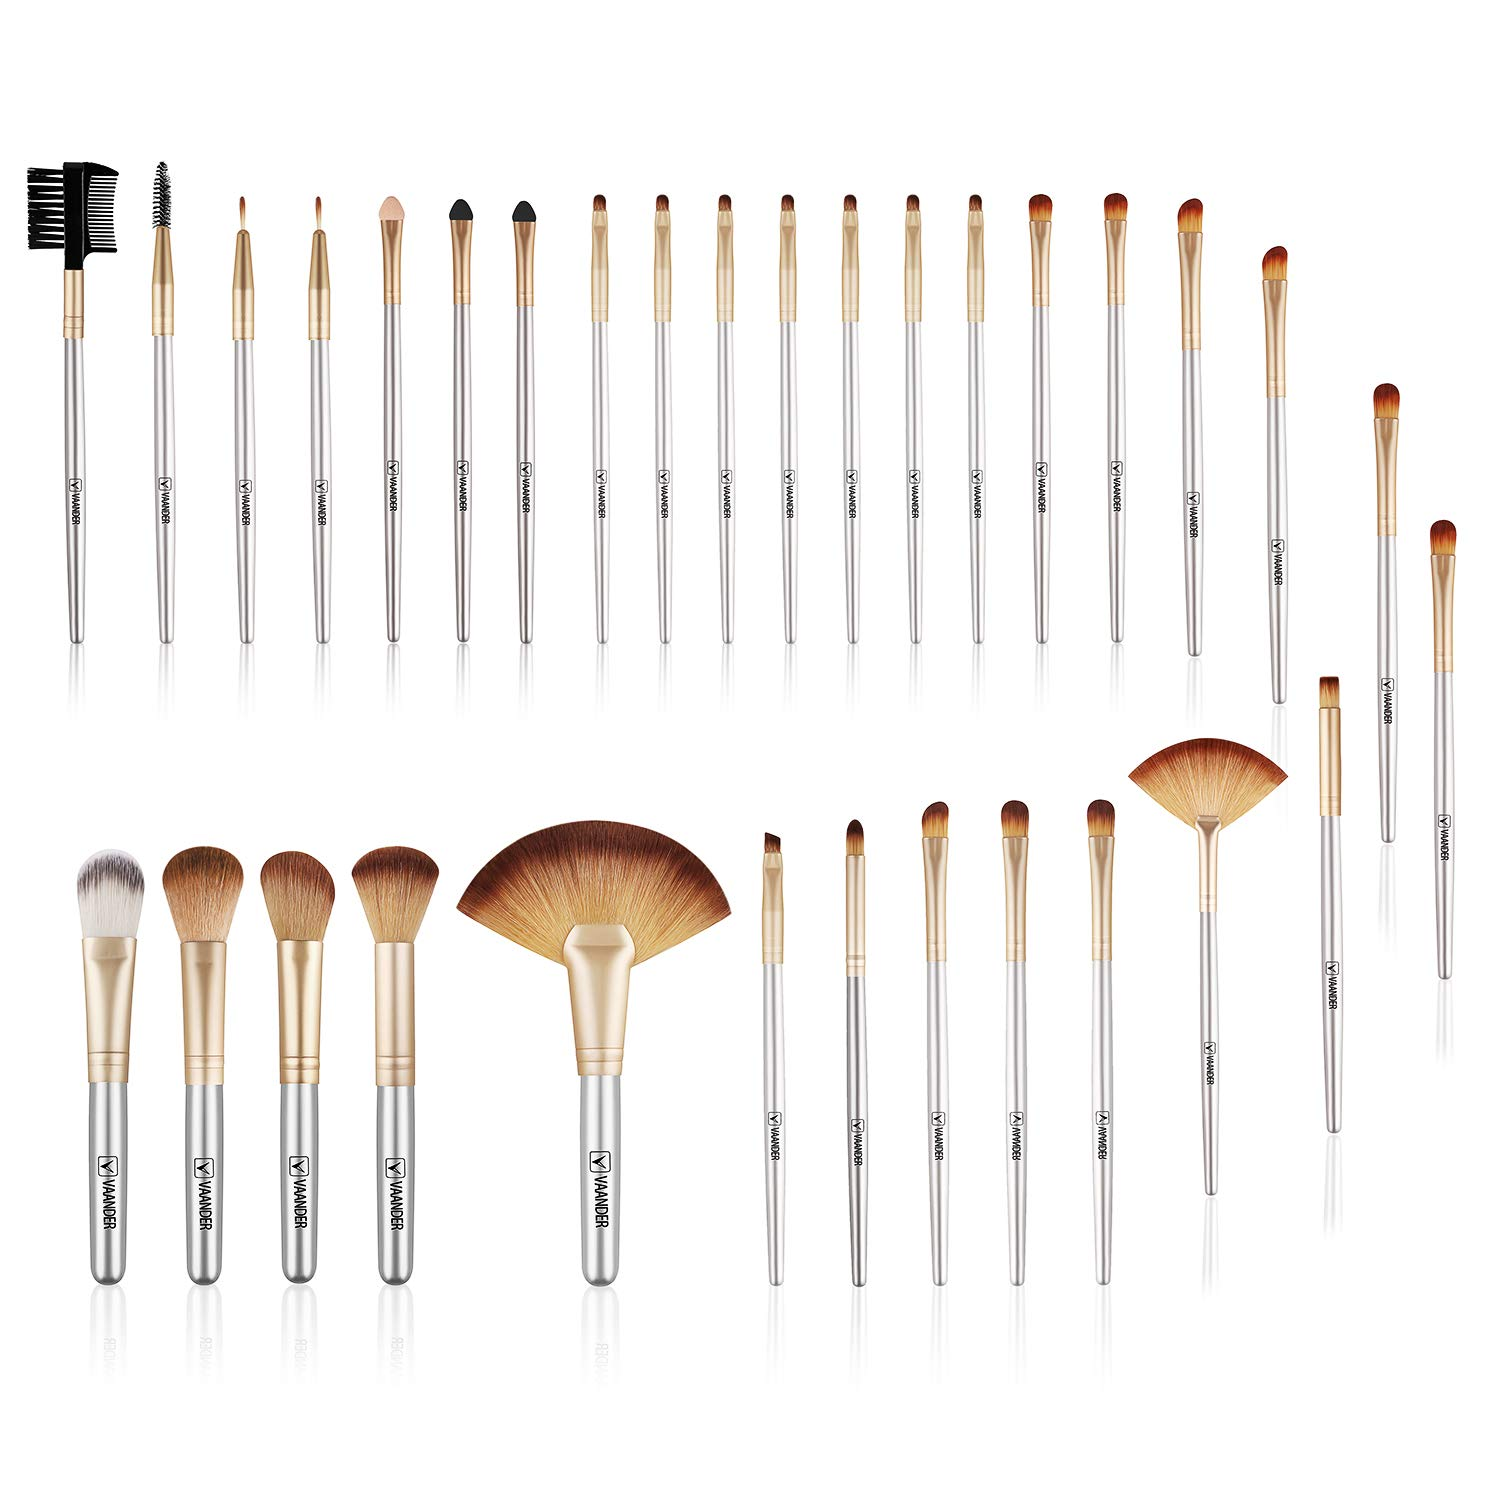 Make up Brushes, VANDER LIFE 32pcs Premium Cosmetic Makeup Brush Set for Foundation Blending Blush Concealer Eye Shadow, Cruelty-Free Synthetic Fiber Bristles, Travel Makeup bag Included, Champagne